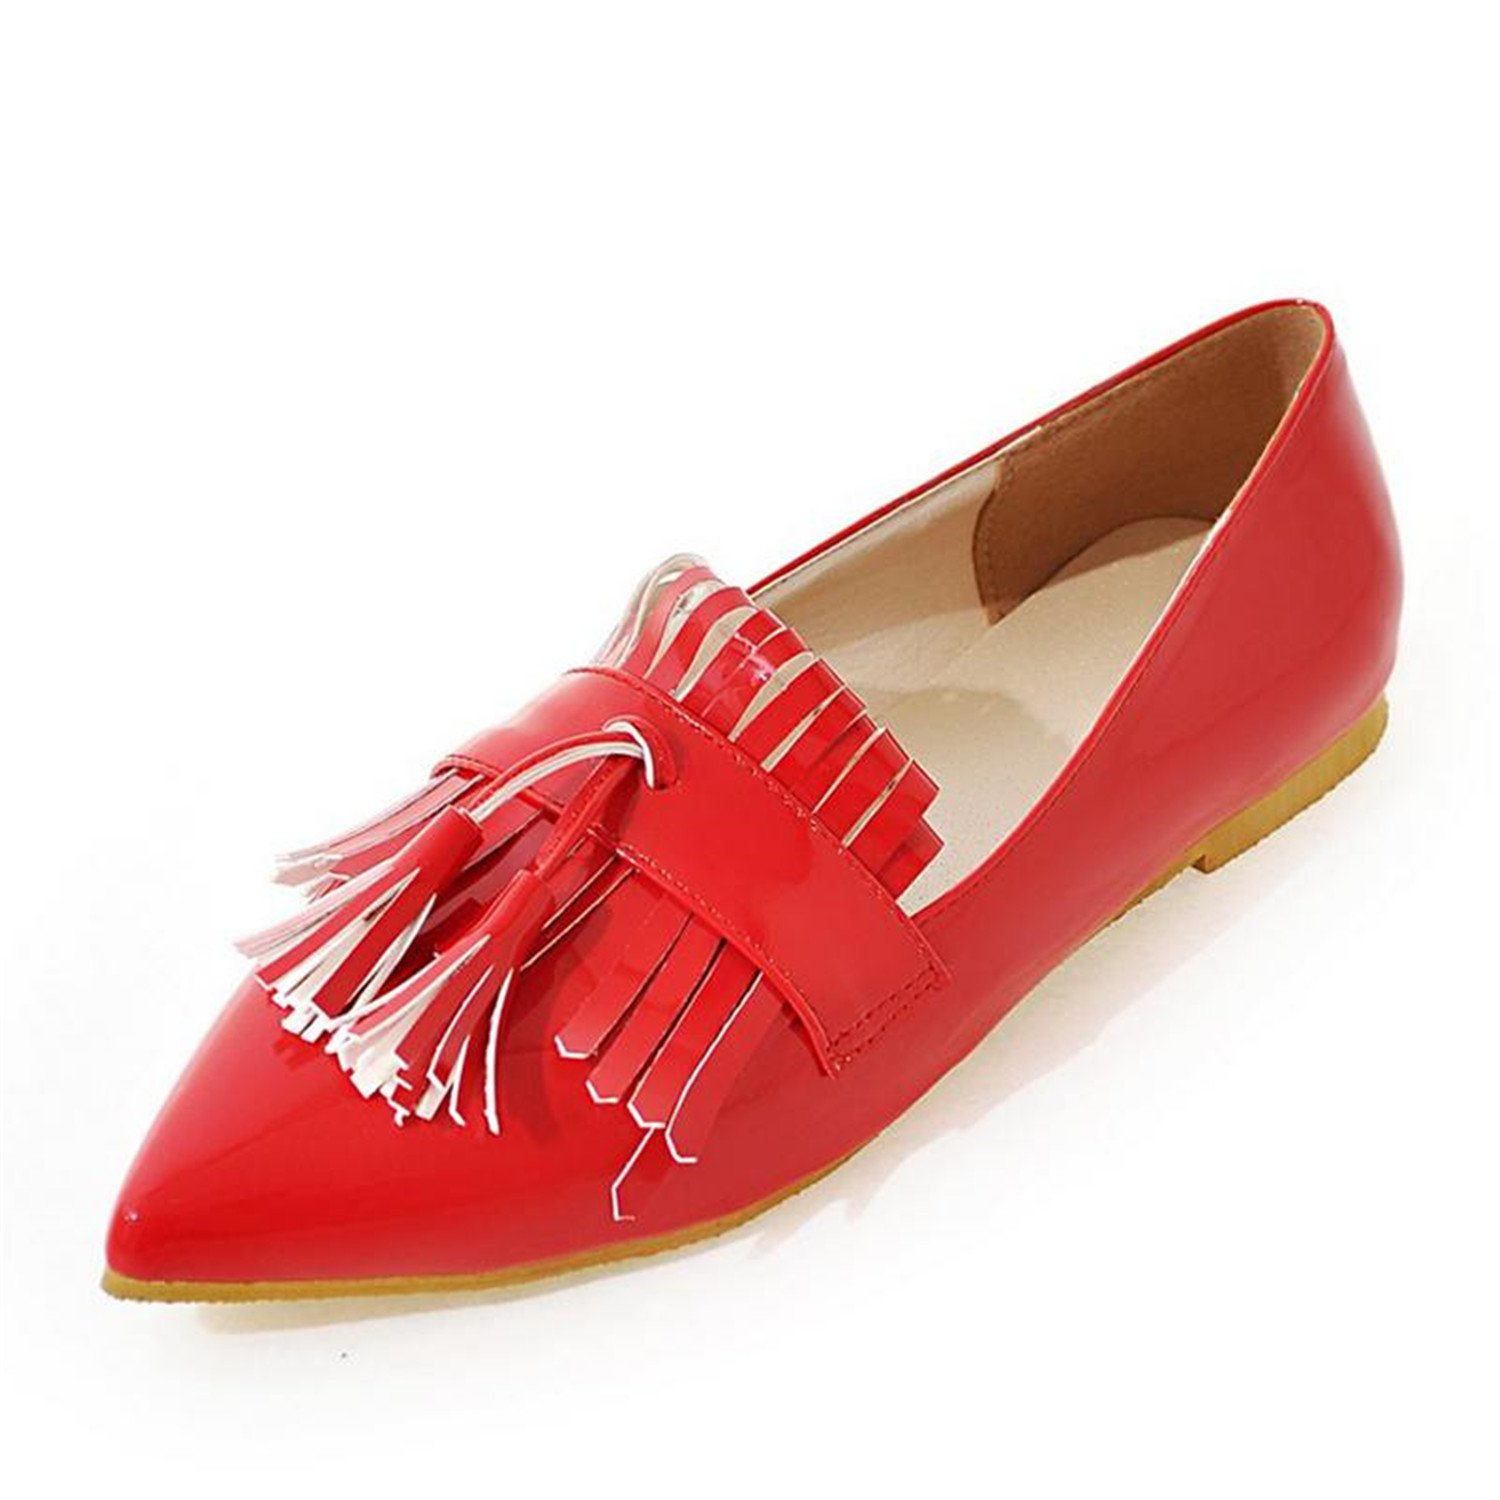 Baqijian Female Patent Leather Shoes Summer Tassel Bowtie Buckle Flats Women Shoes Pointed Toe Female Flats S364